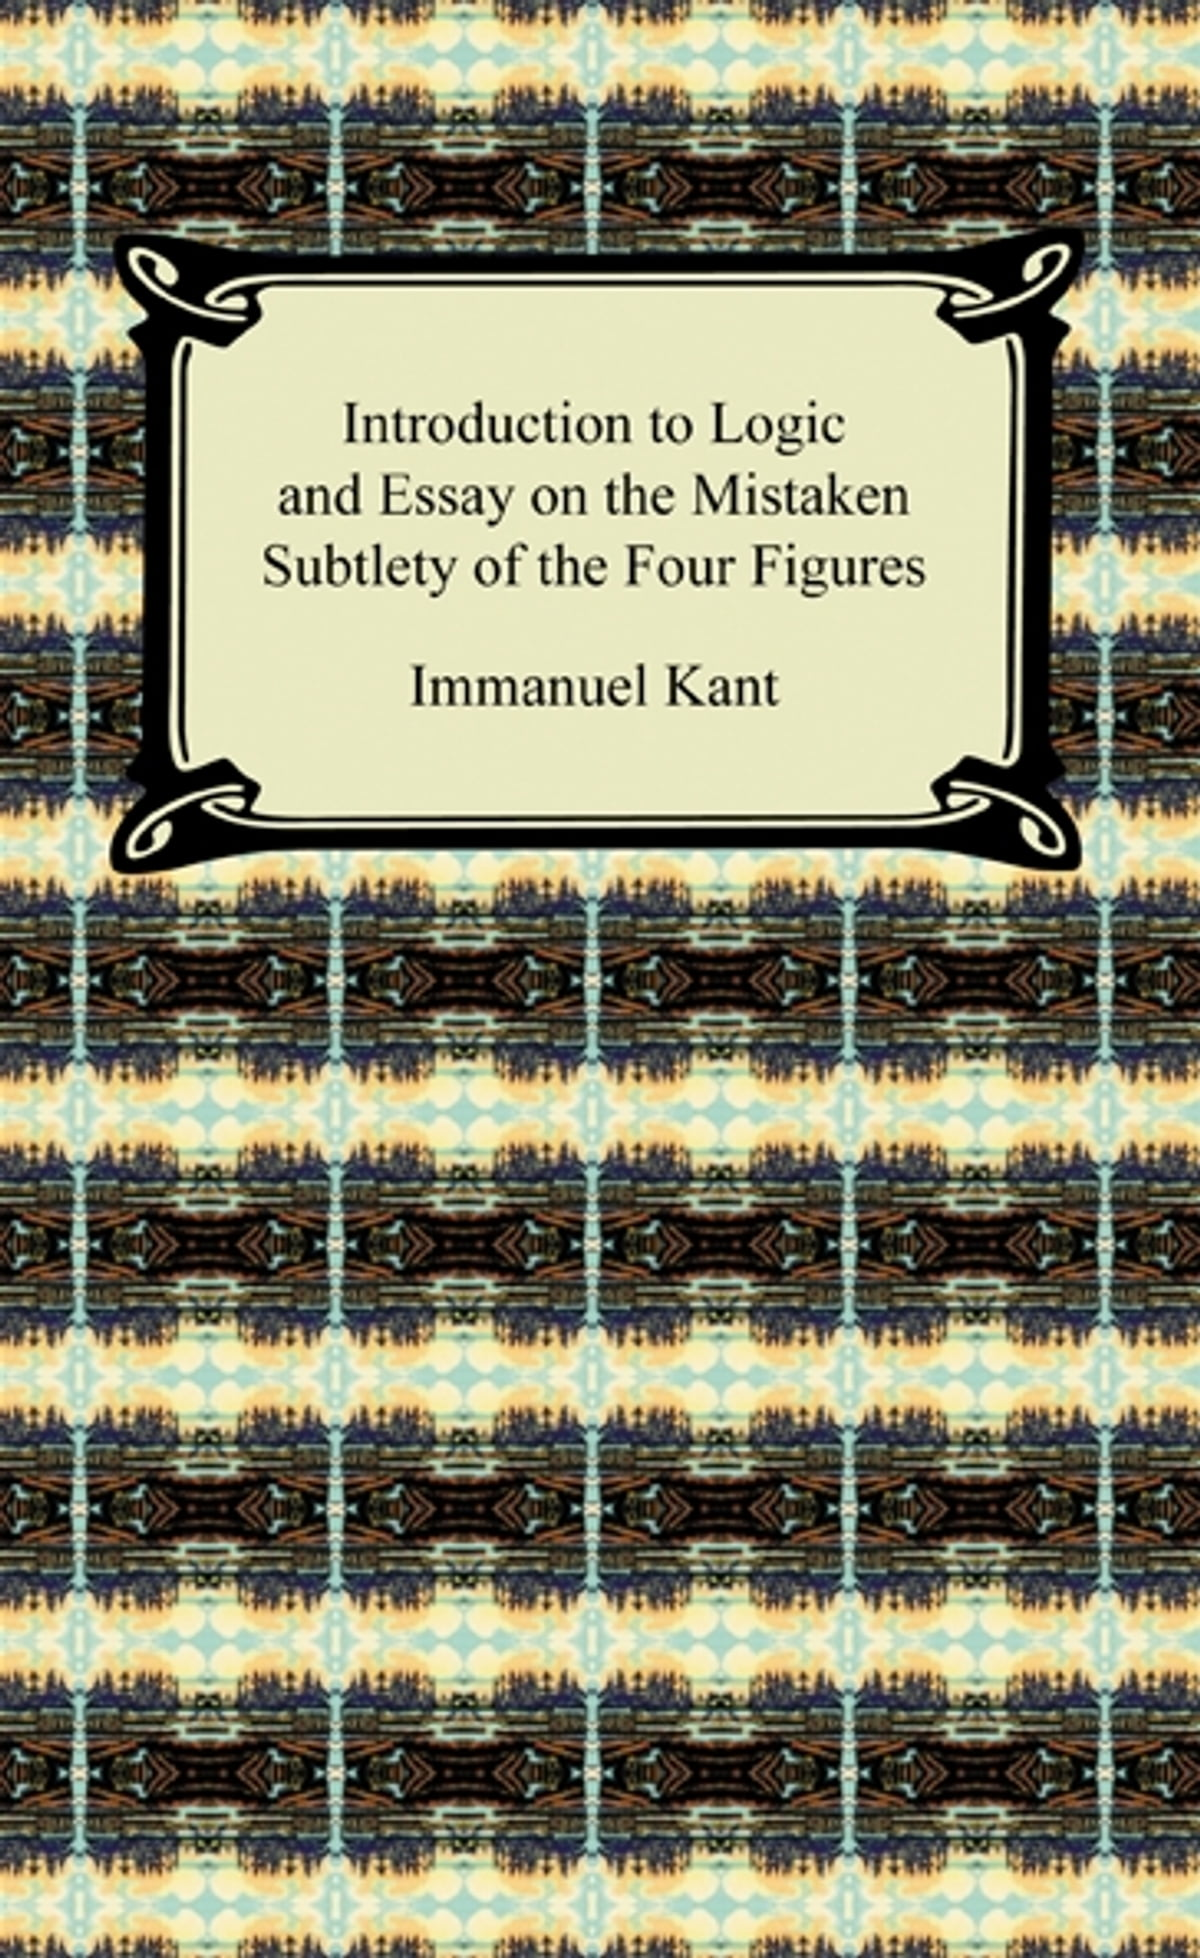 Anne Frank Essays Kants Introduction To Logic And Essay On The Mistaken Subtlety Of The Four  Figures Ebook By Immanuel Kant    Rakuten Kobo Open University Essays also The Chrysanthemums Essay Kants Introduction To Logic And Essay On The Mistaken Subtlety Of  Essay About Gun Control